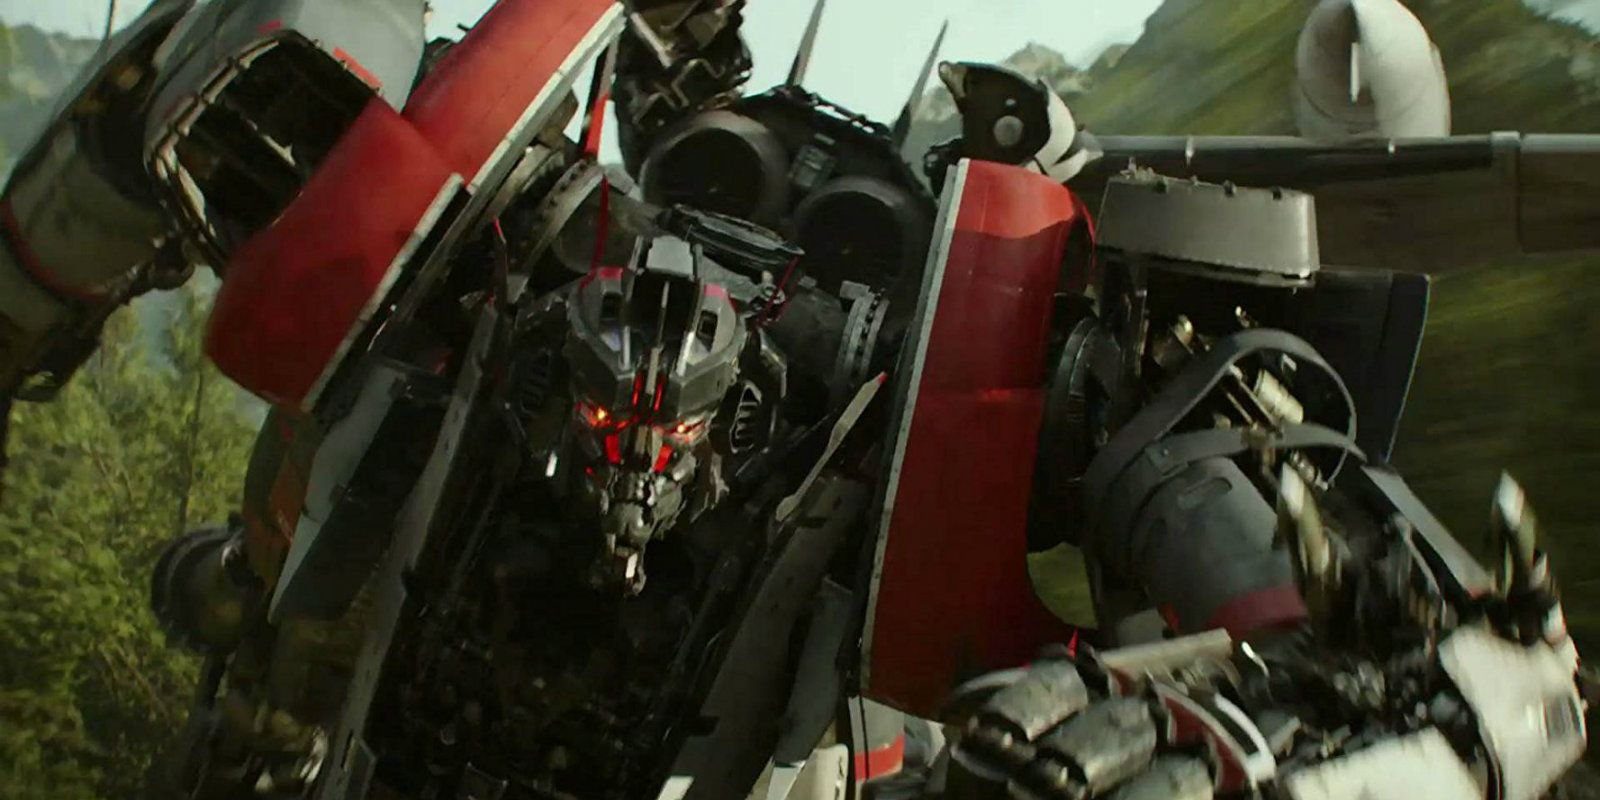 transformers bumblebee movie includes fewer decepticons